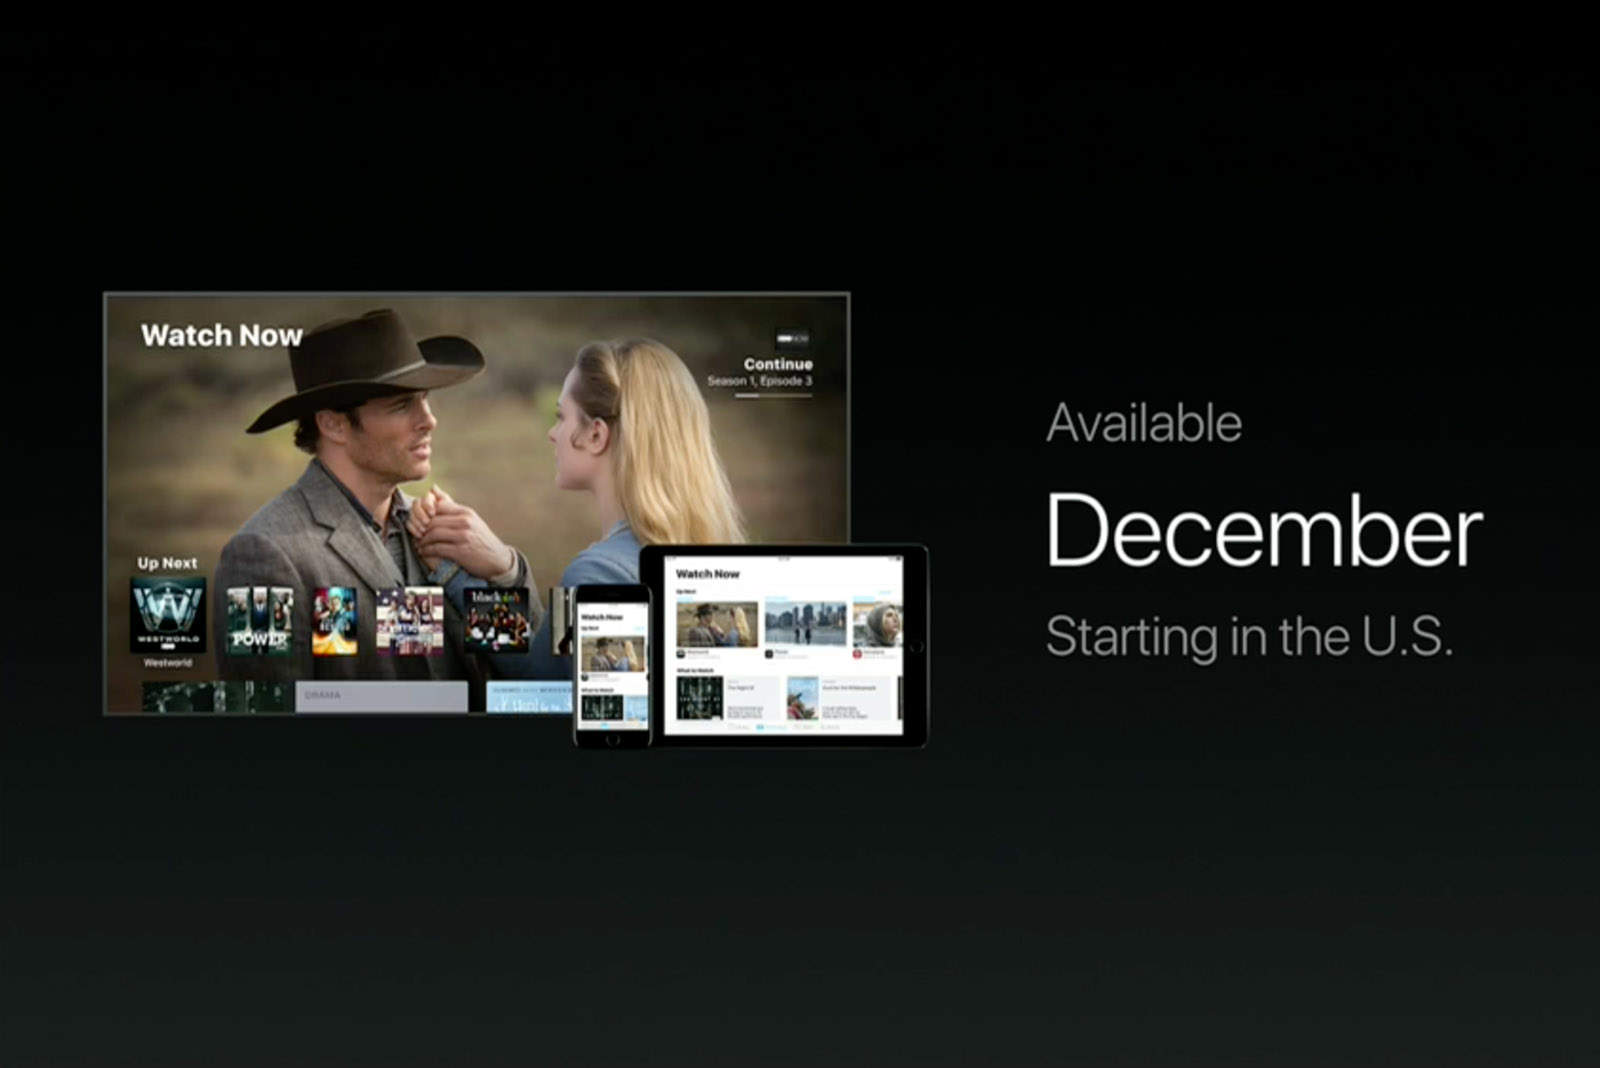 The TV app is set to go public in December.